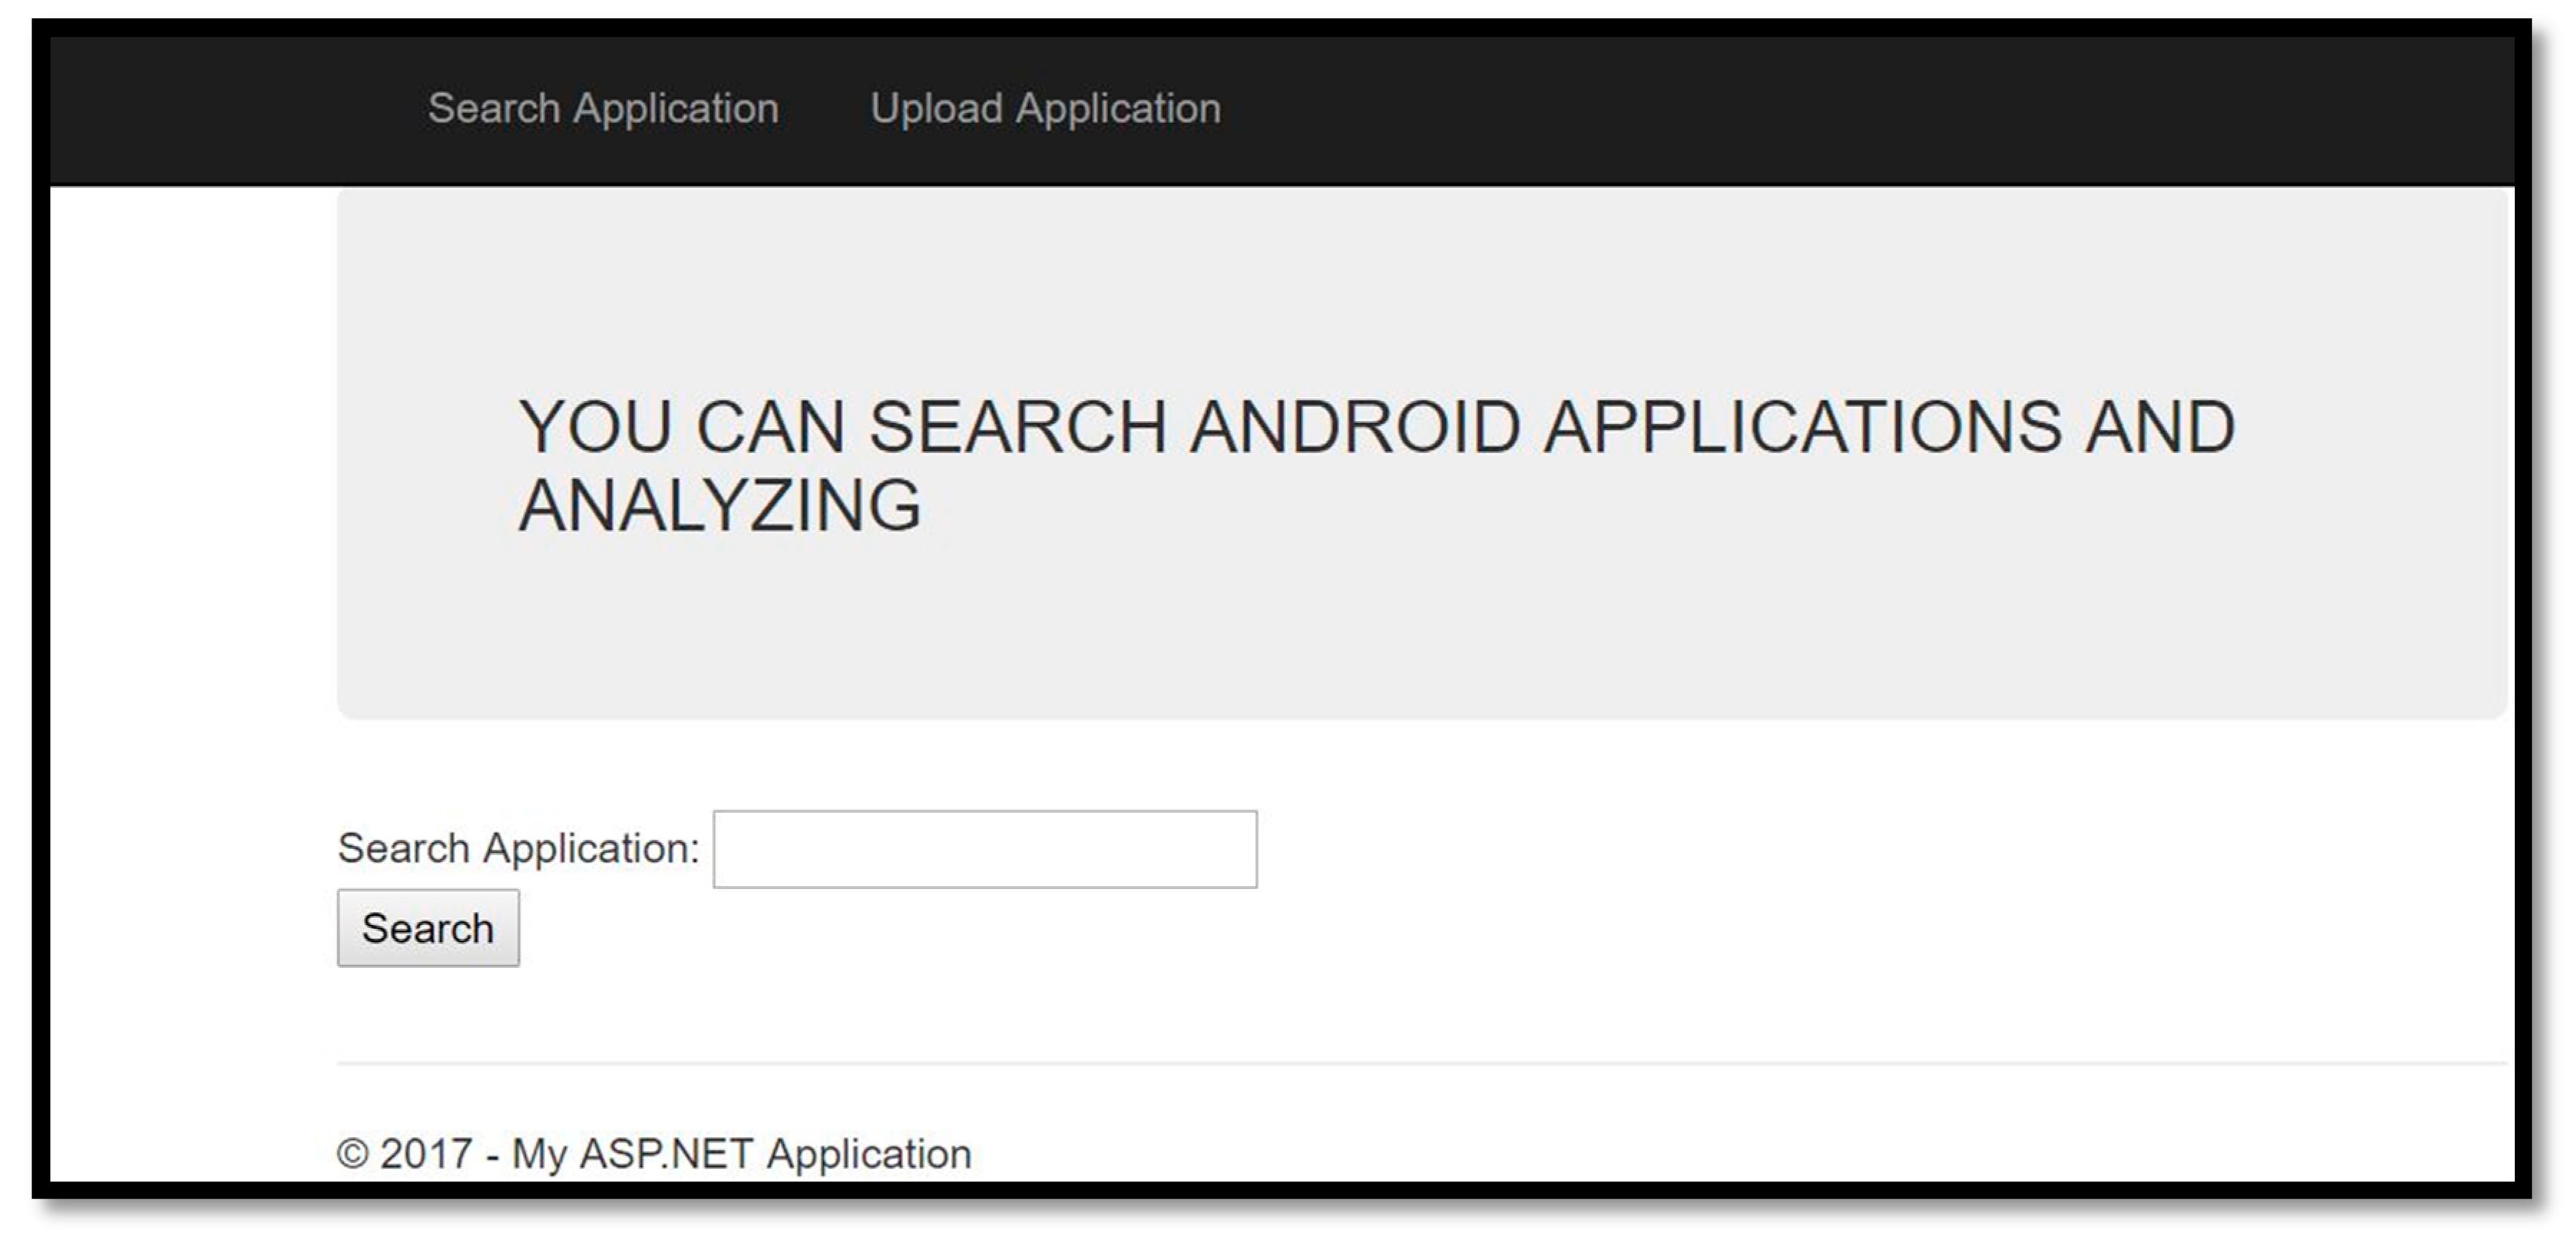 Android Permission Write_External_Storage applied sciences | free full-text | web-based android